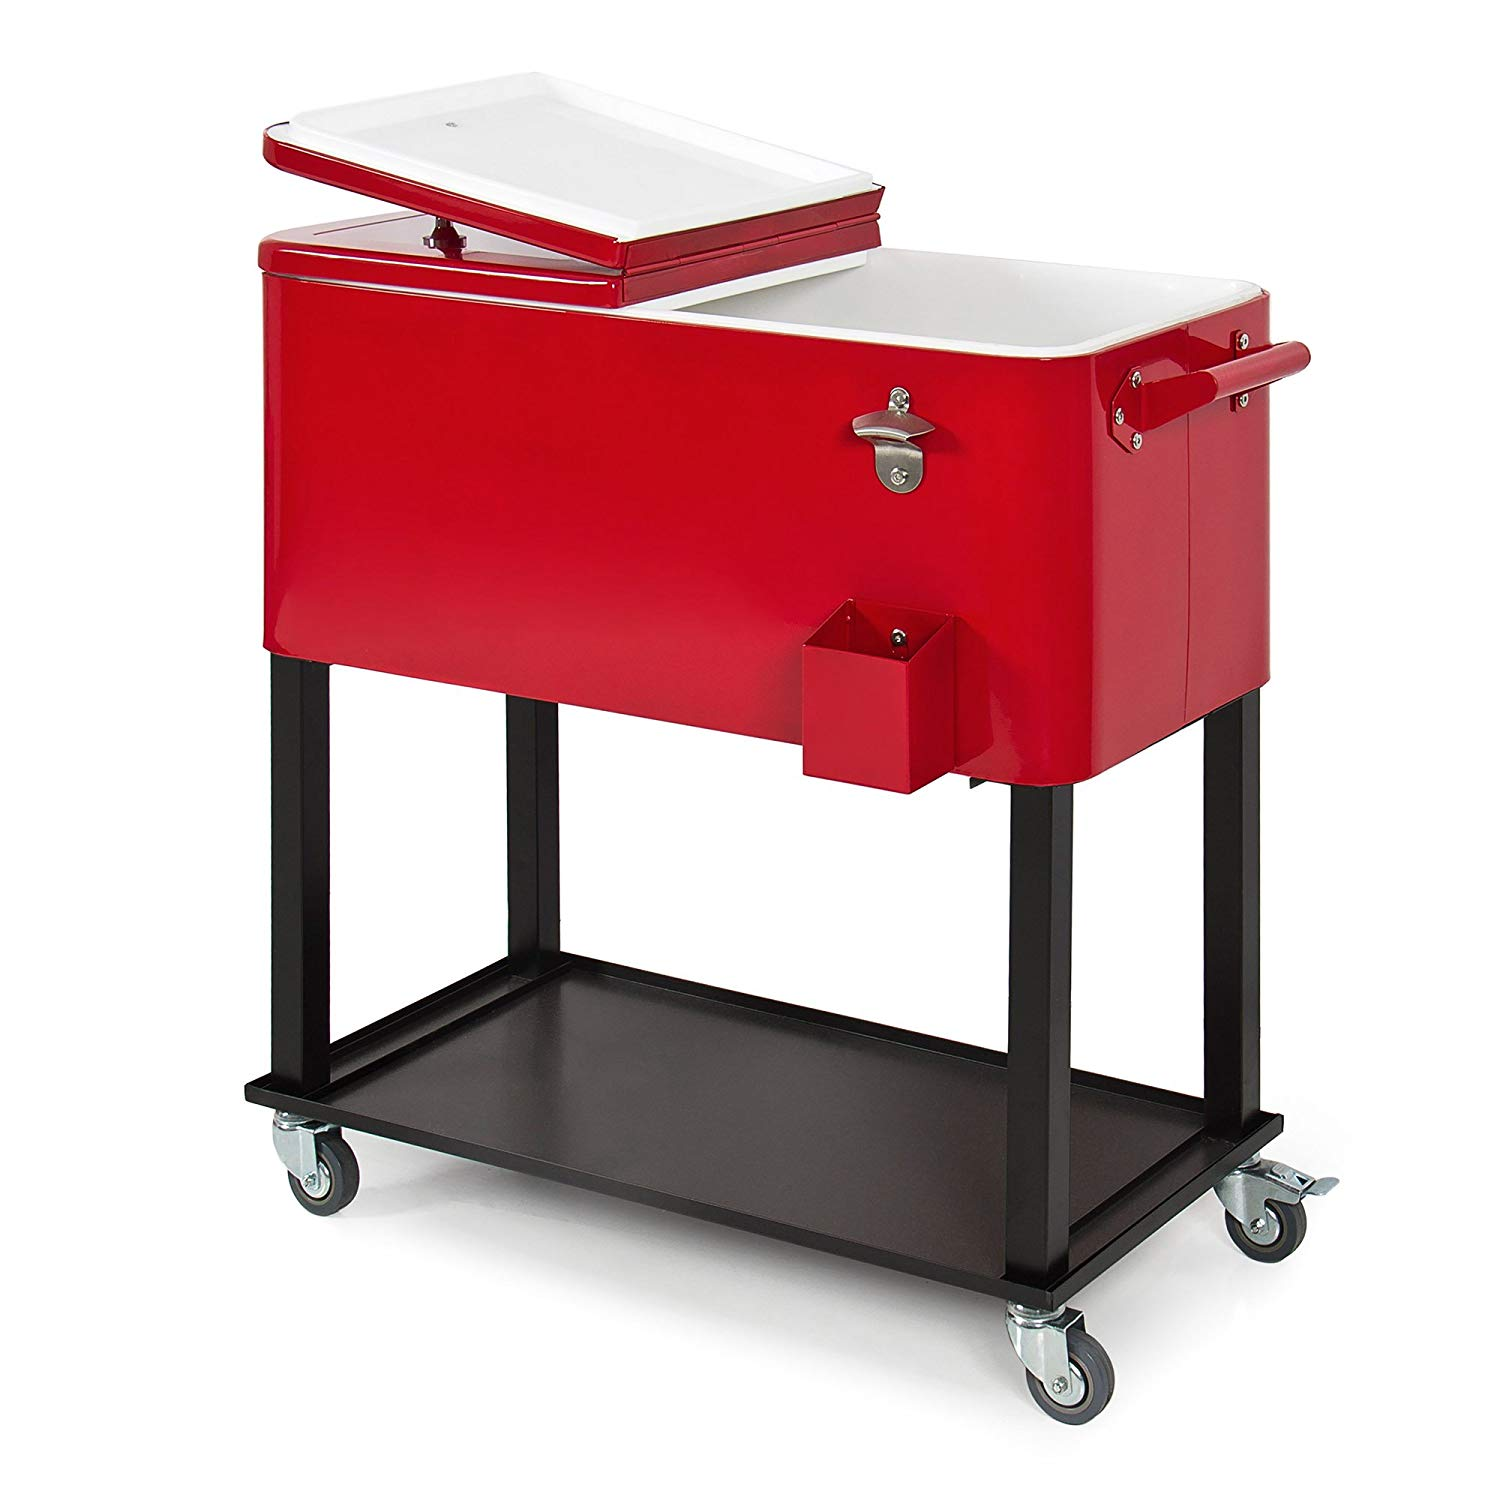 Rolling Outdoor Patio Deck Party Cooler